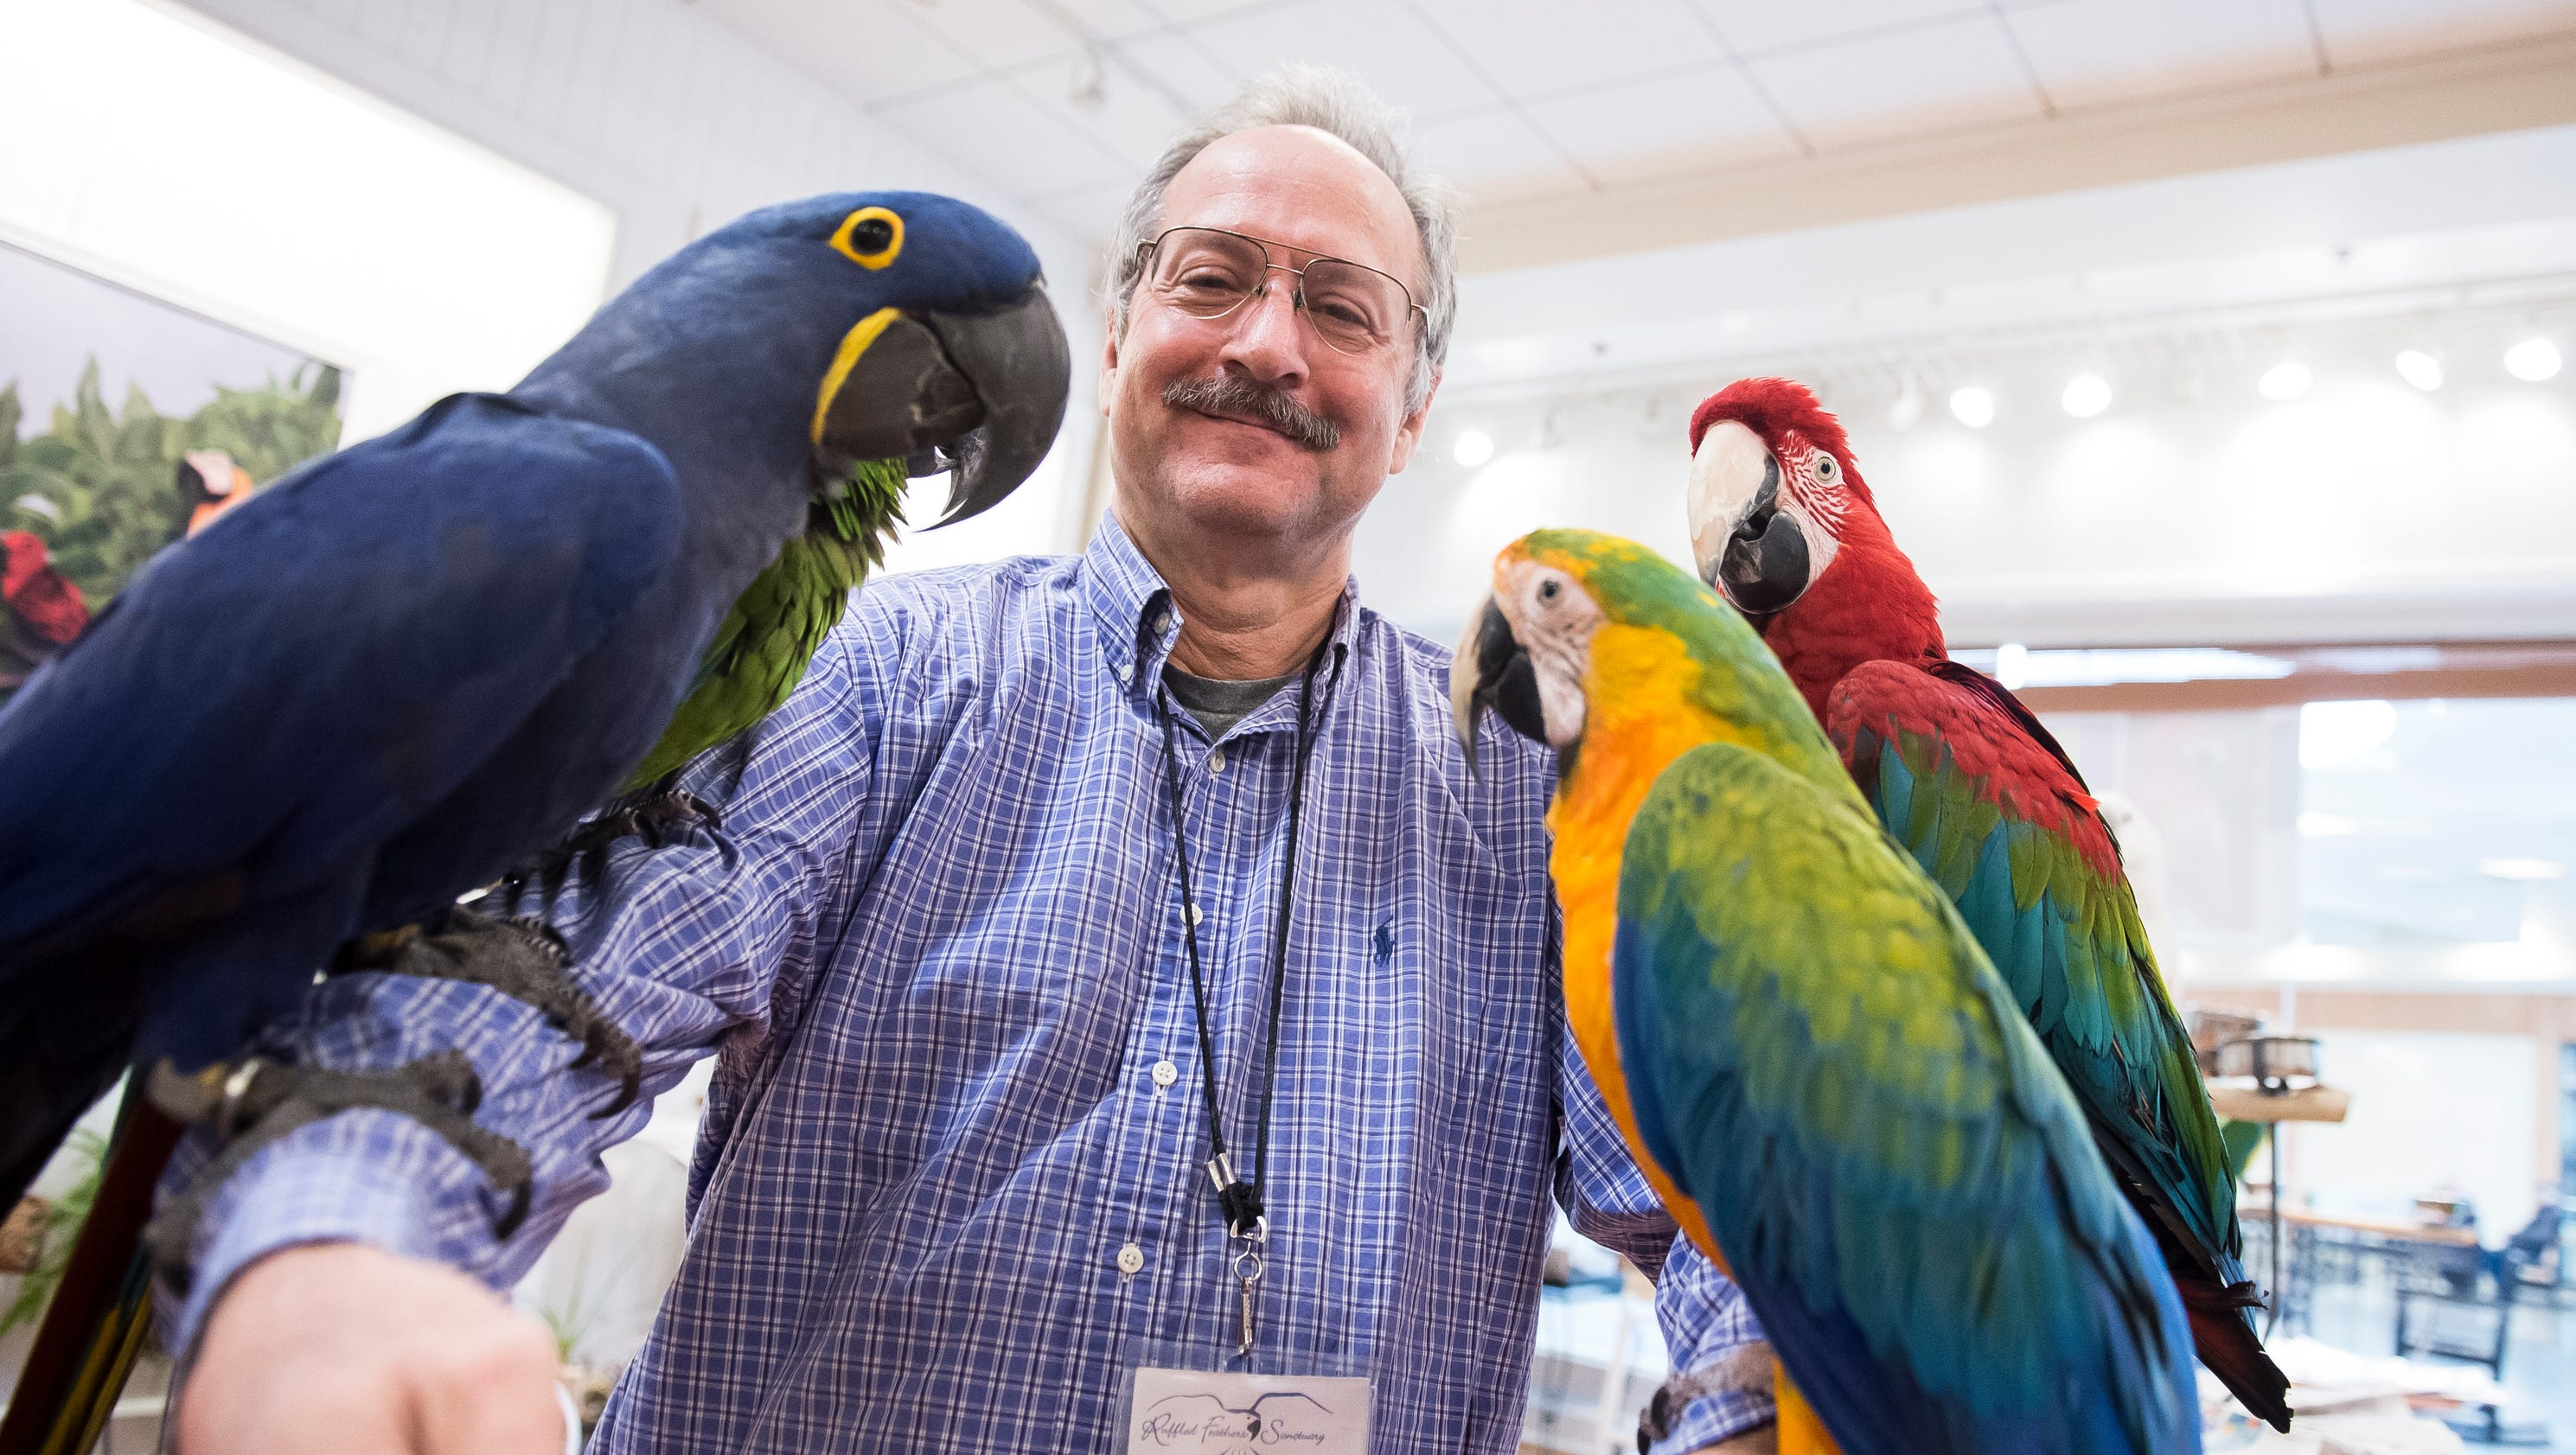 Ruffled Feathers bird sanctuary spreads its wings in Hanover Ruffled Feathers Sanctuary